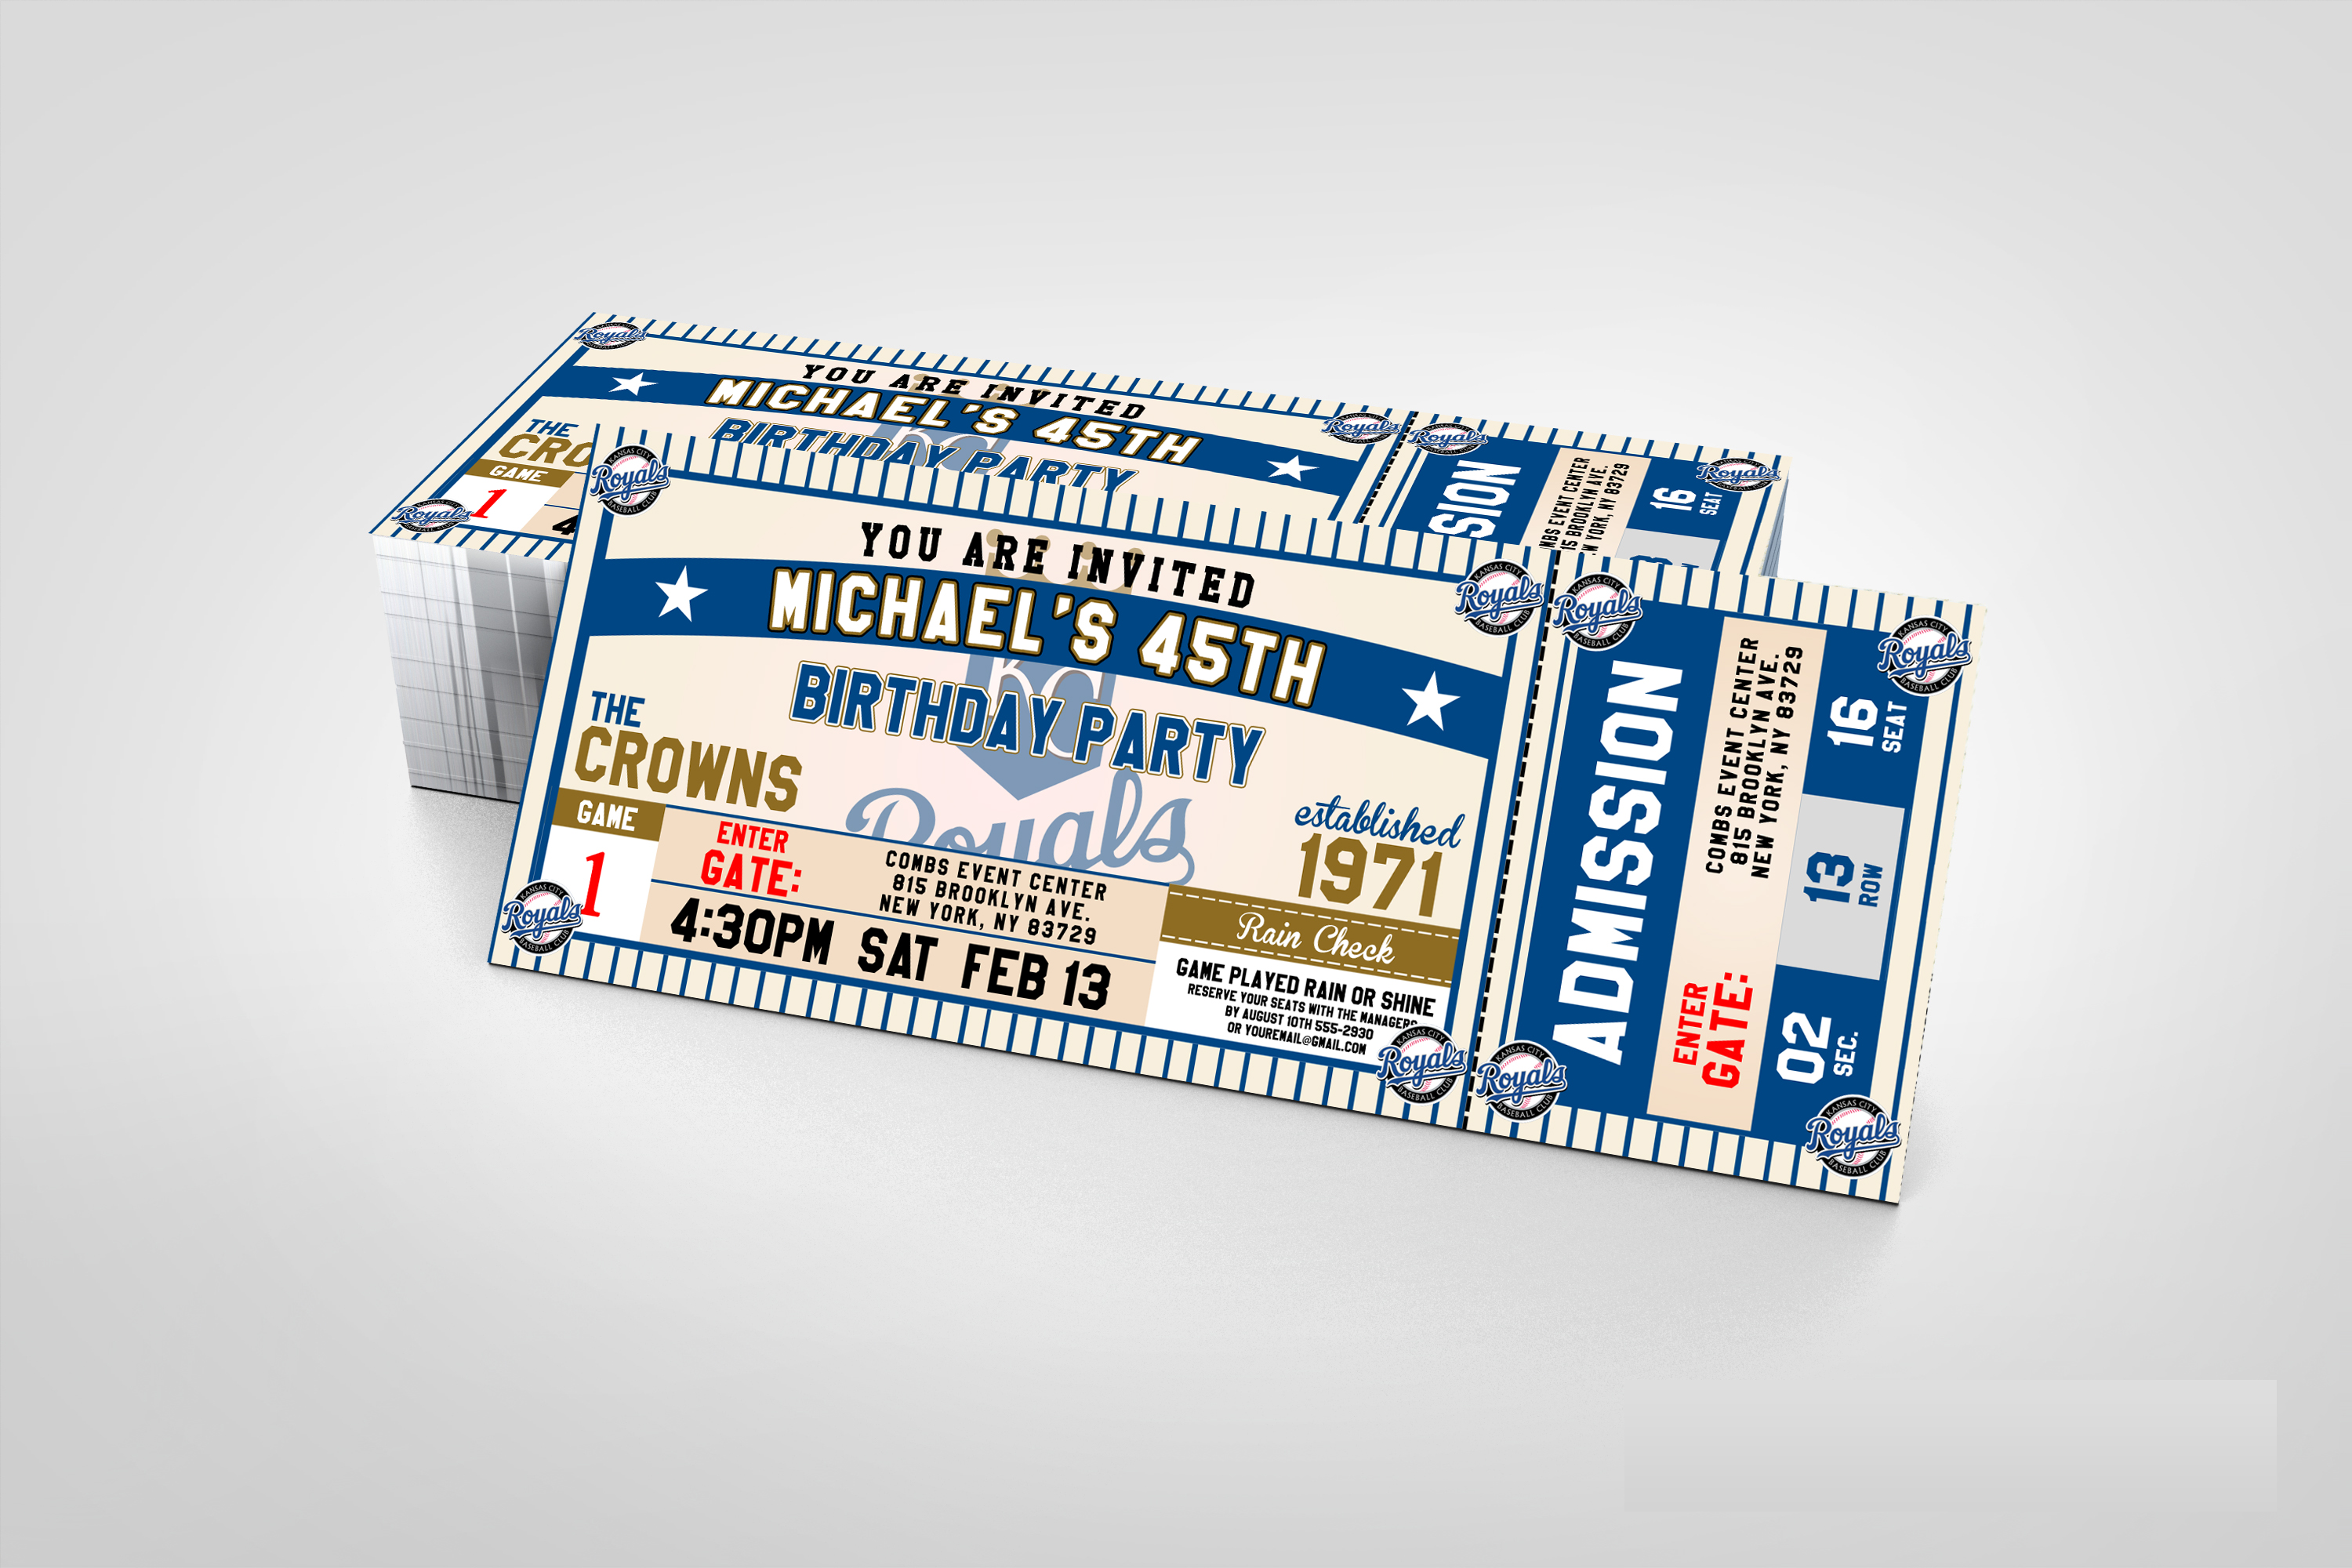 City Royals Clic Ticket Sports Party Invitations